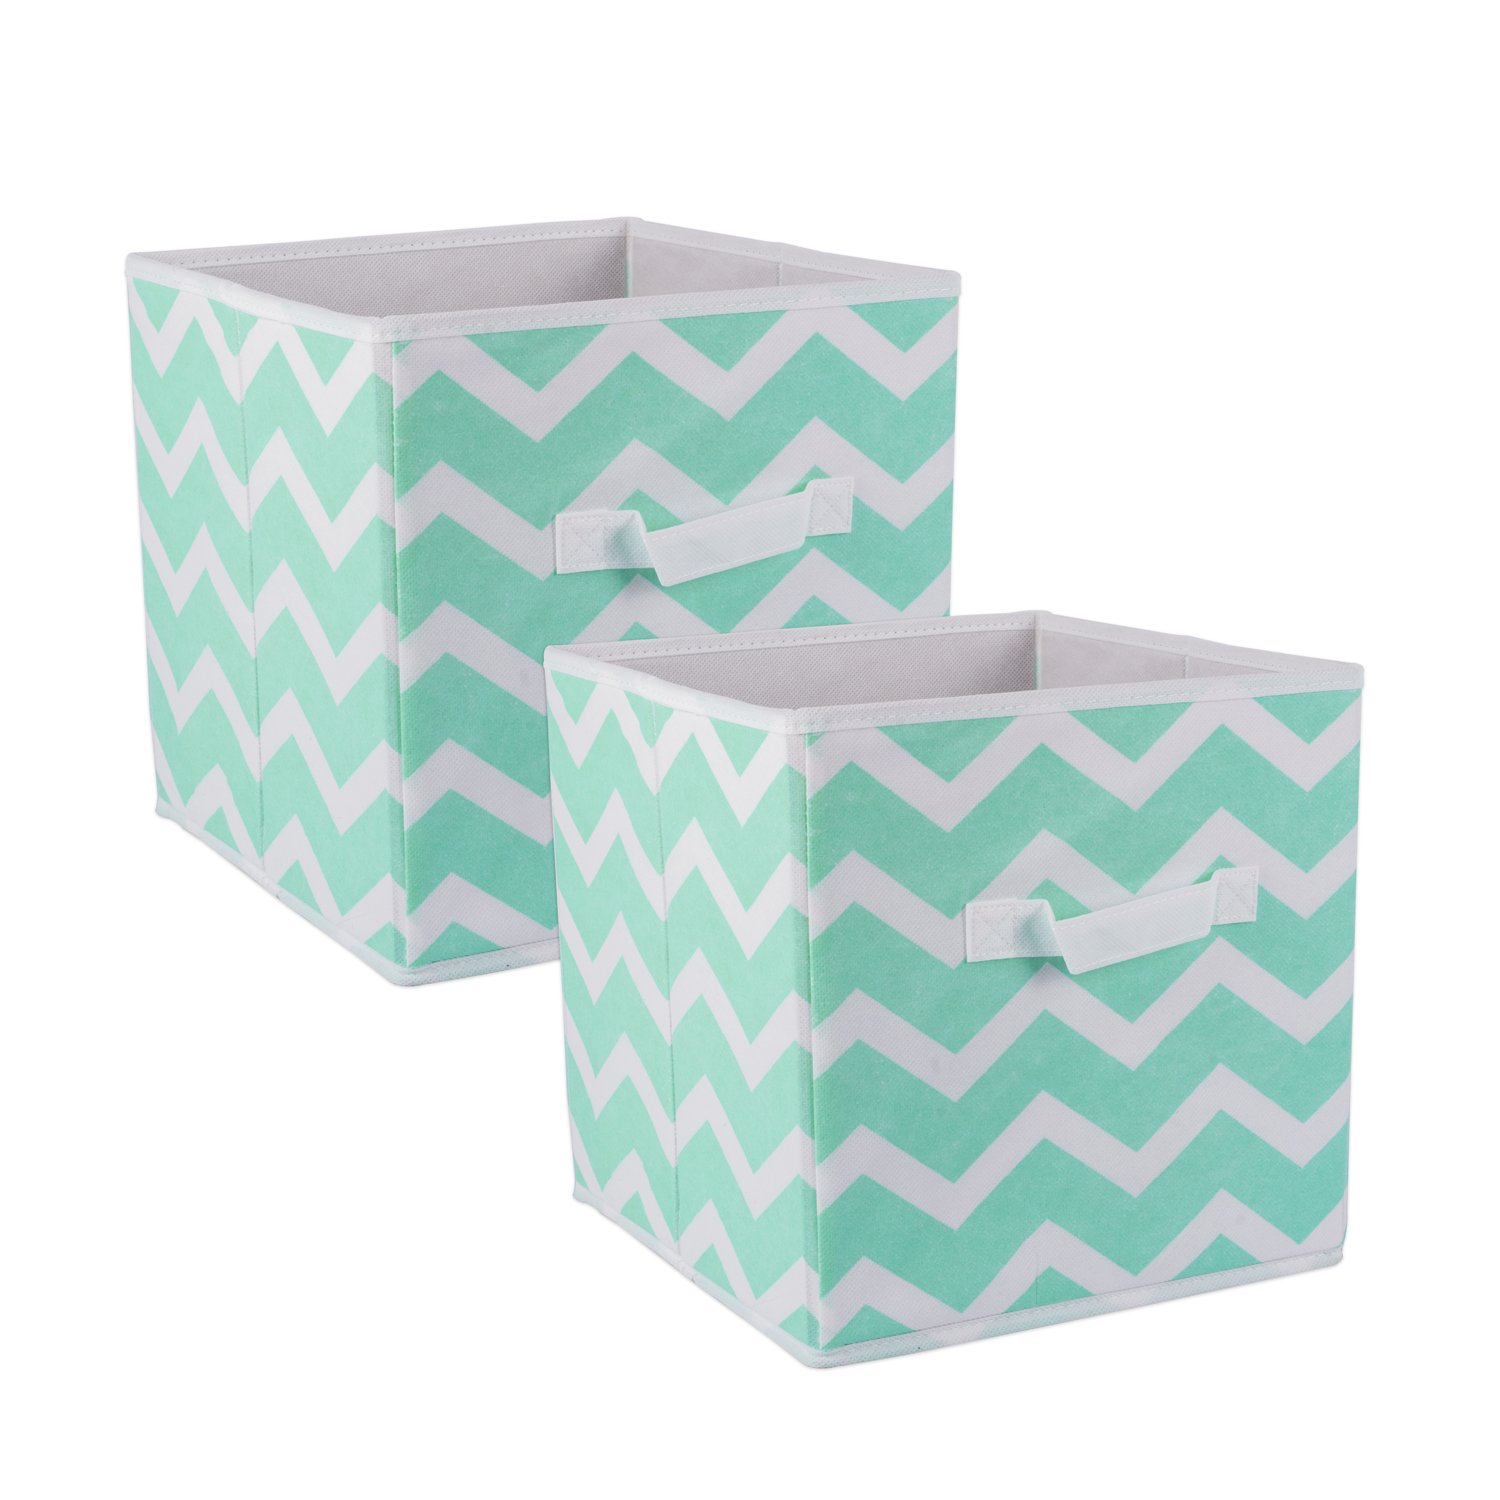 Amazon.com: DII Fabric Storage Bins For Nursery, Offices, Home  Organization, Containers Are Made To Fit Standard Cube Organizers  (11x11x11) Chevron Aqua ...